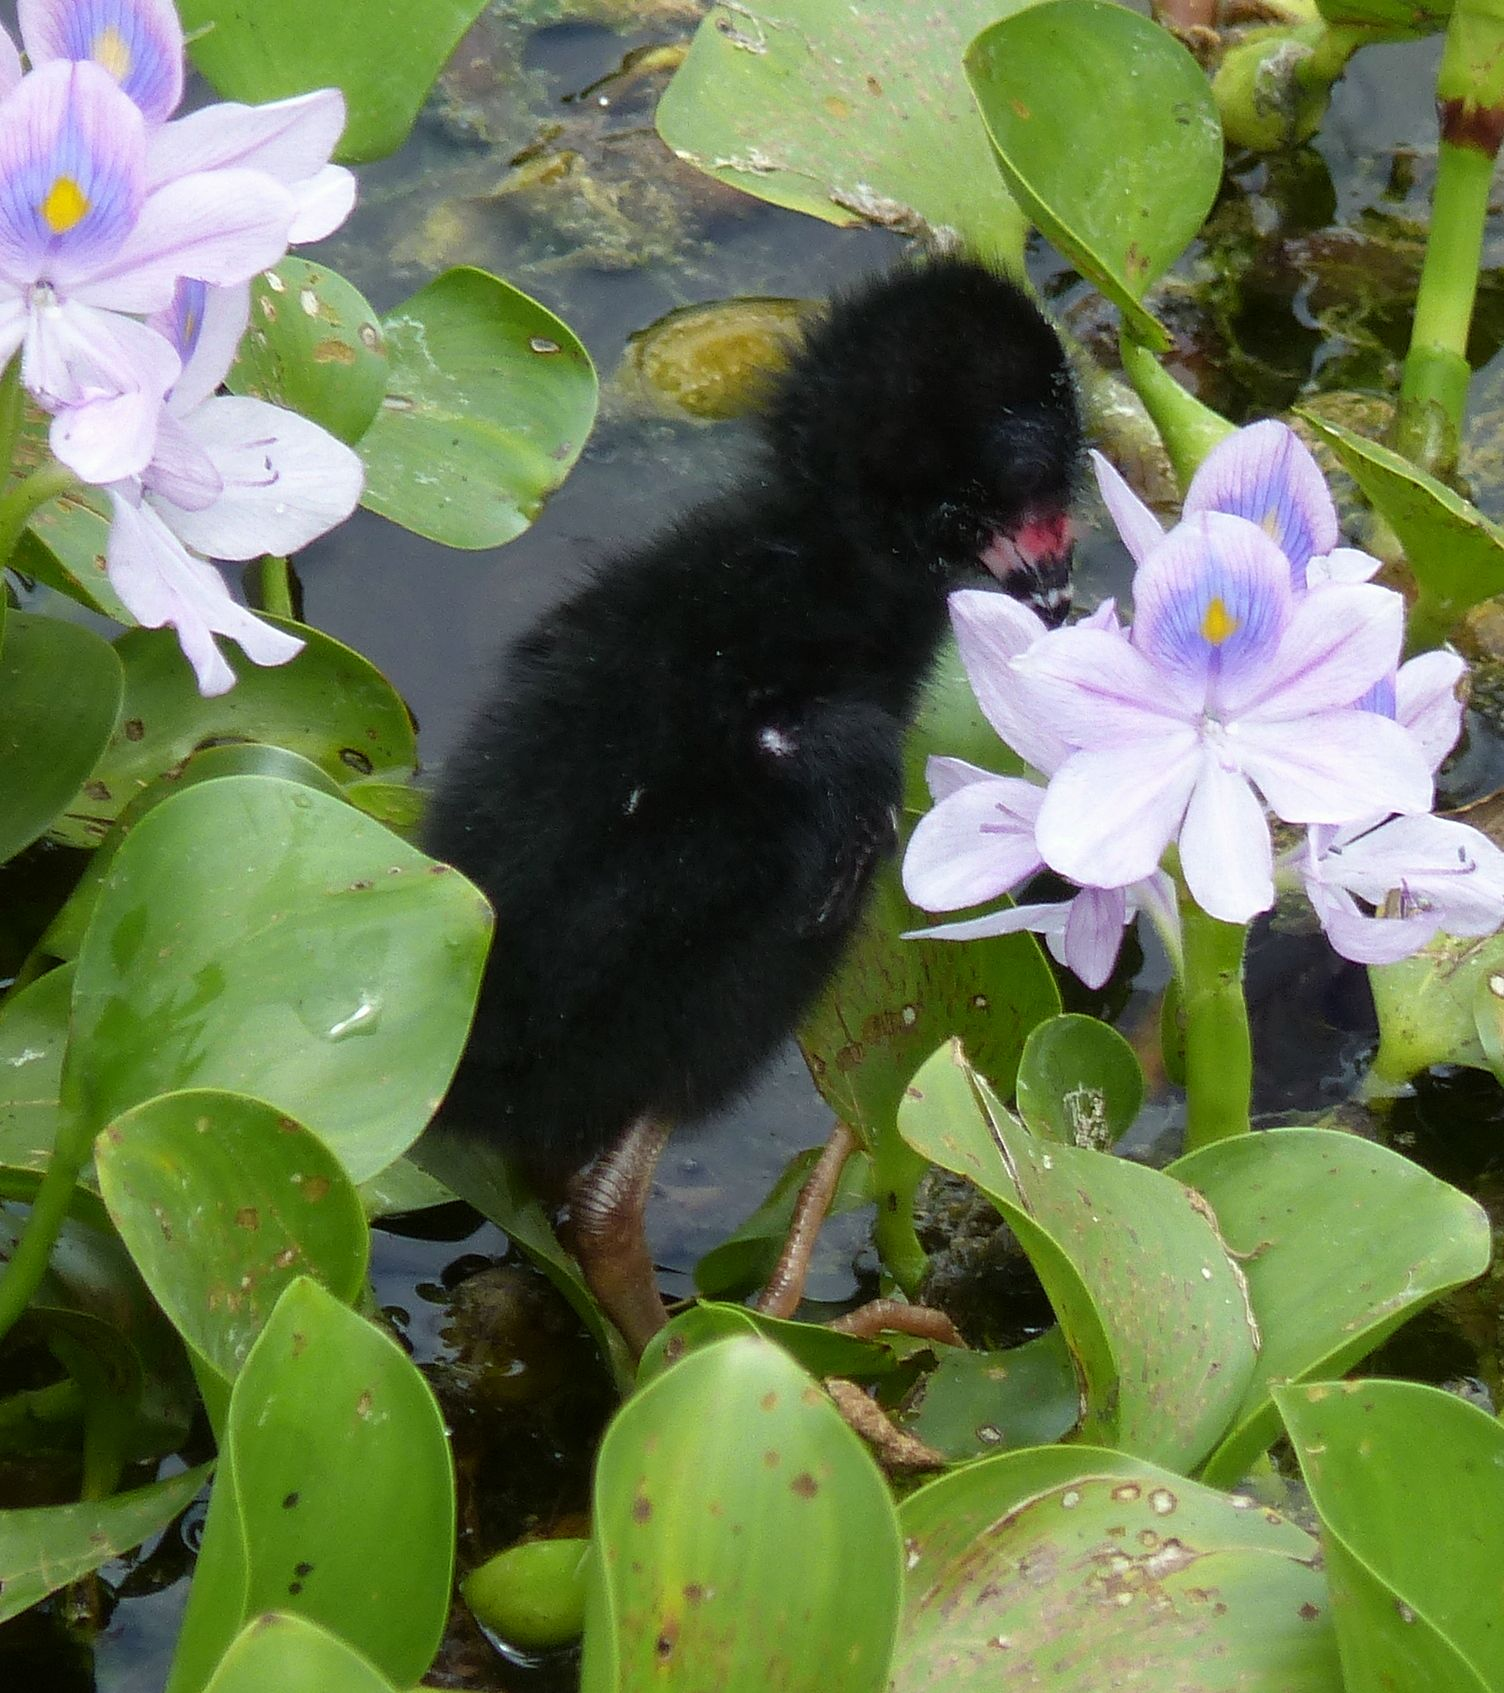 P3010016 june 4 baby gallinule peering into water hyacinth flower